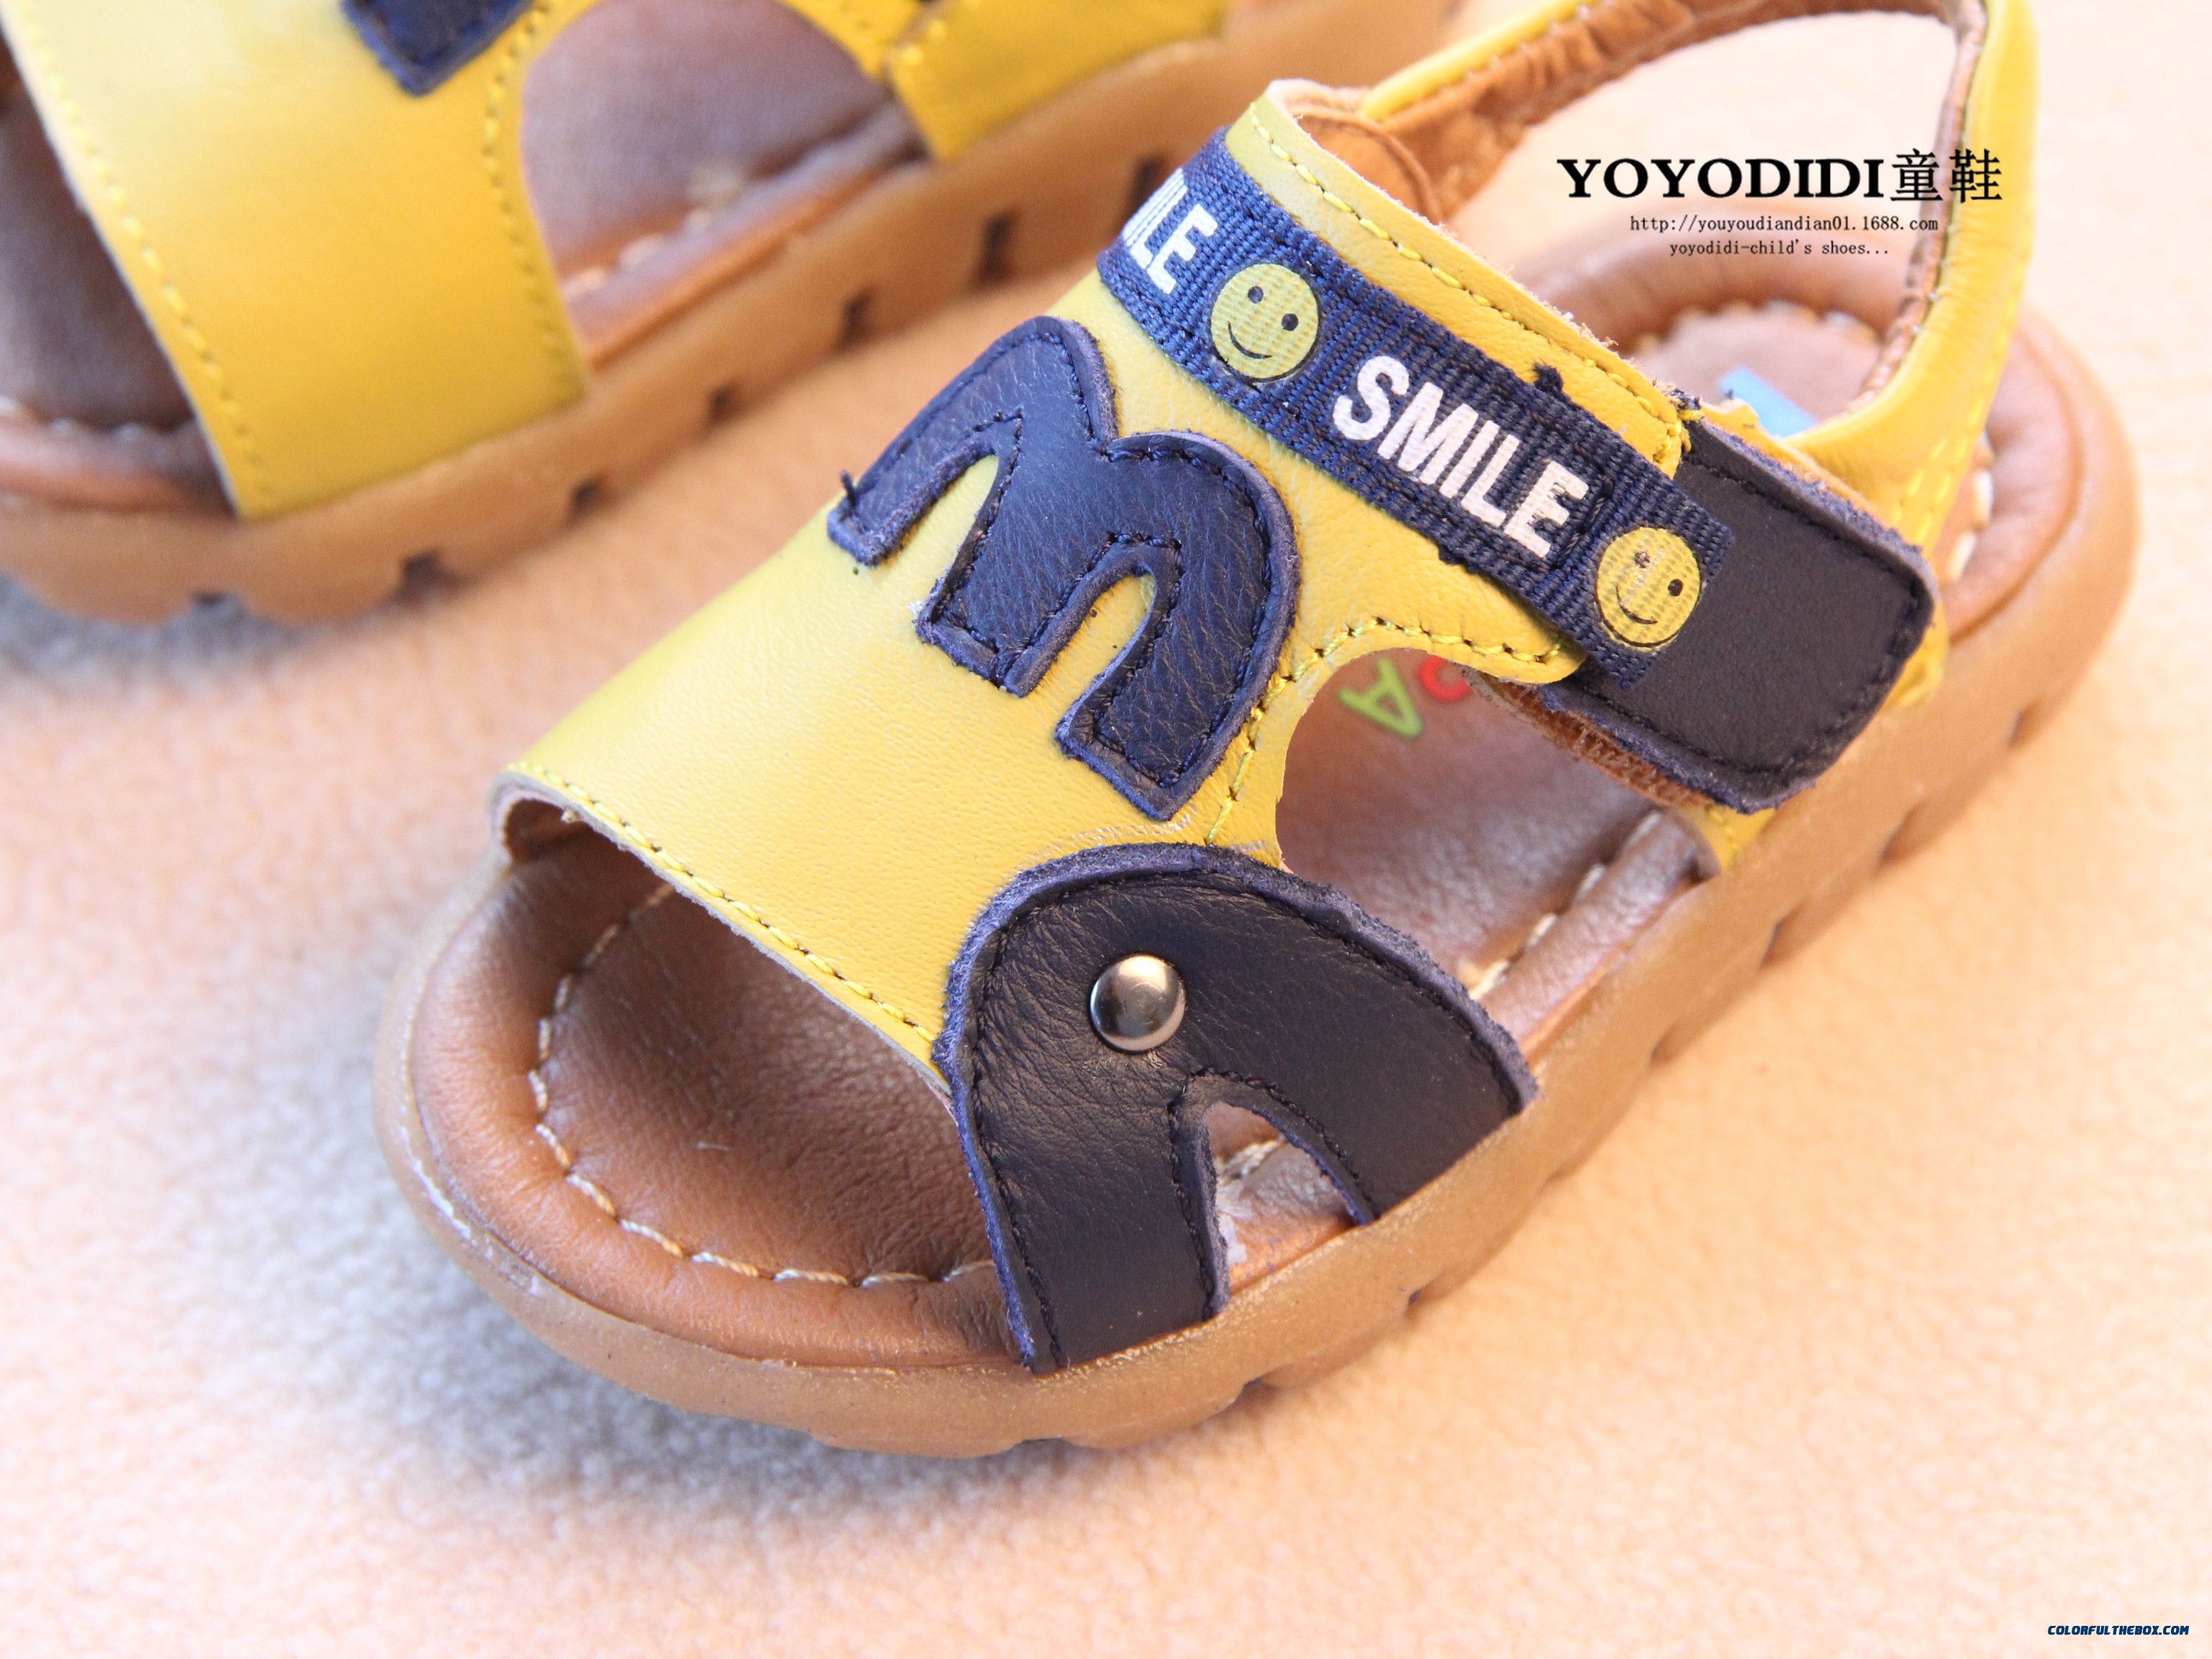 Leather Soft Outsole Baby Boys Open Toe Leather Kids Child Sandals - more images 4